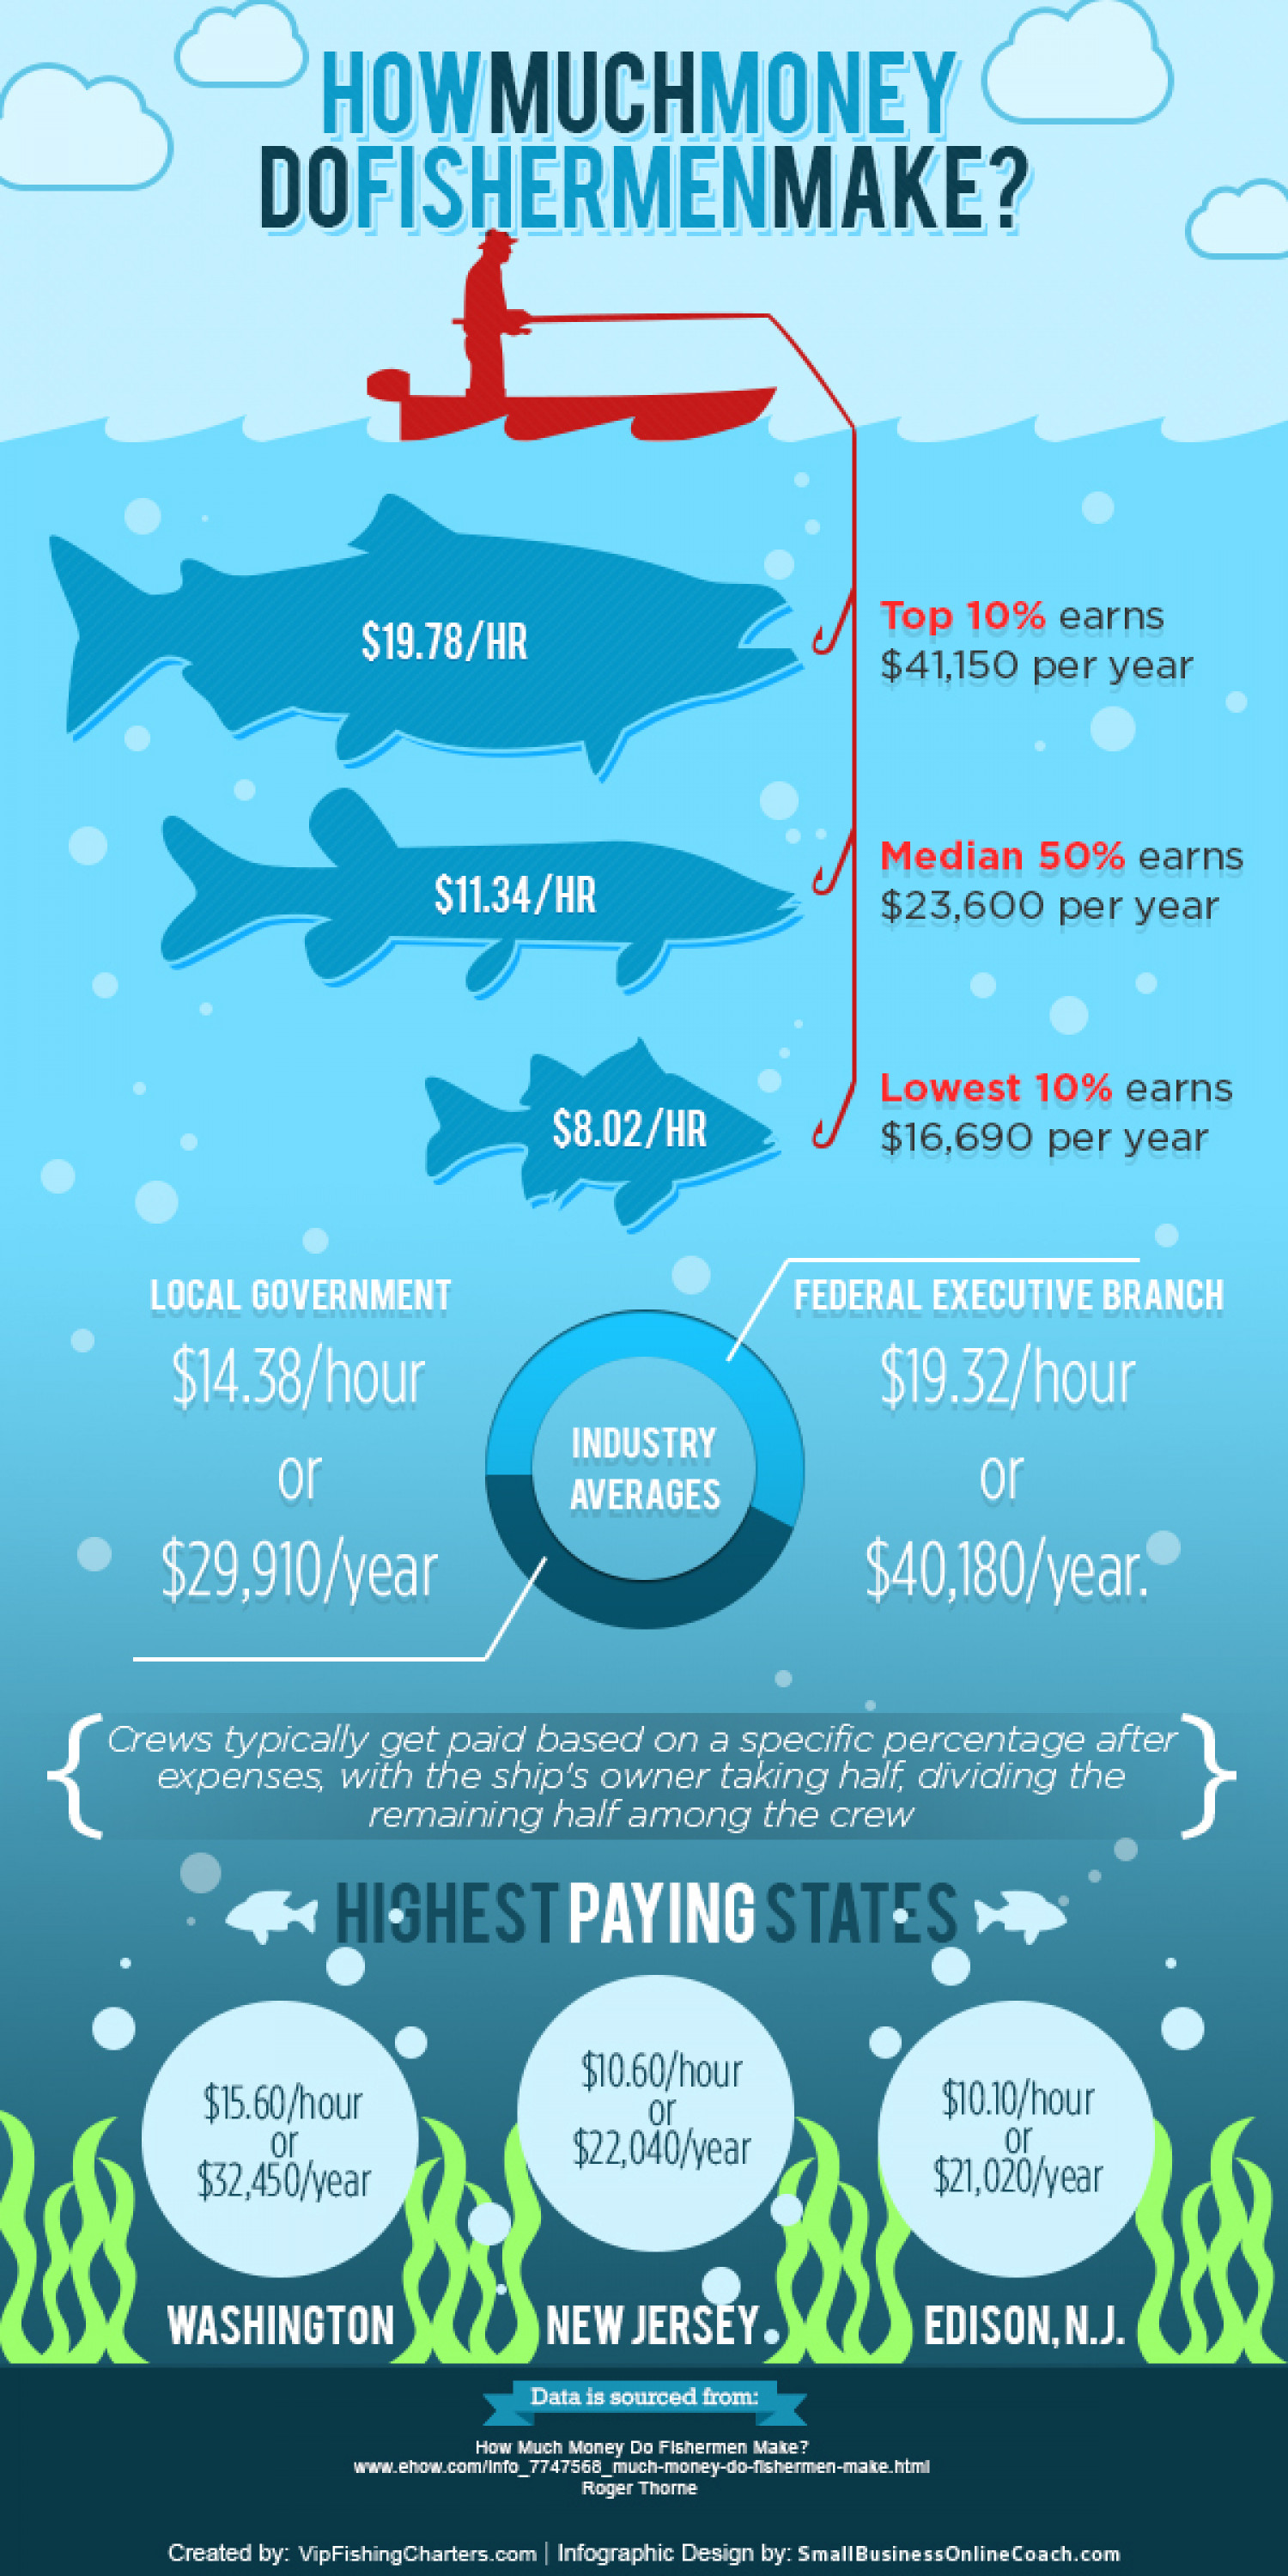 How Much Money Do Fishermen Make? Infographic